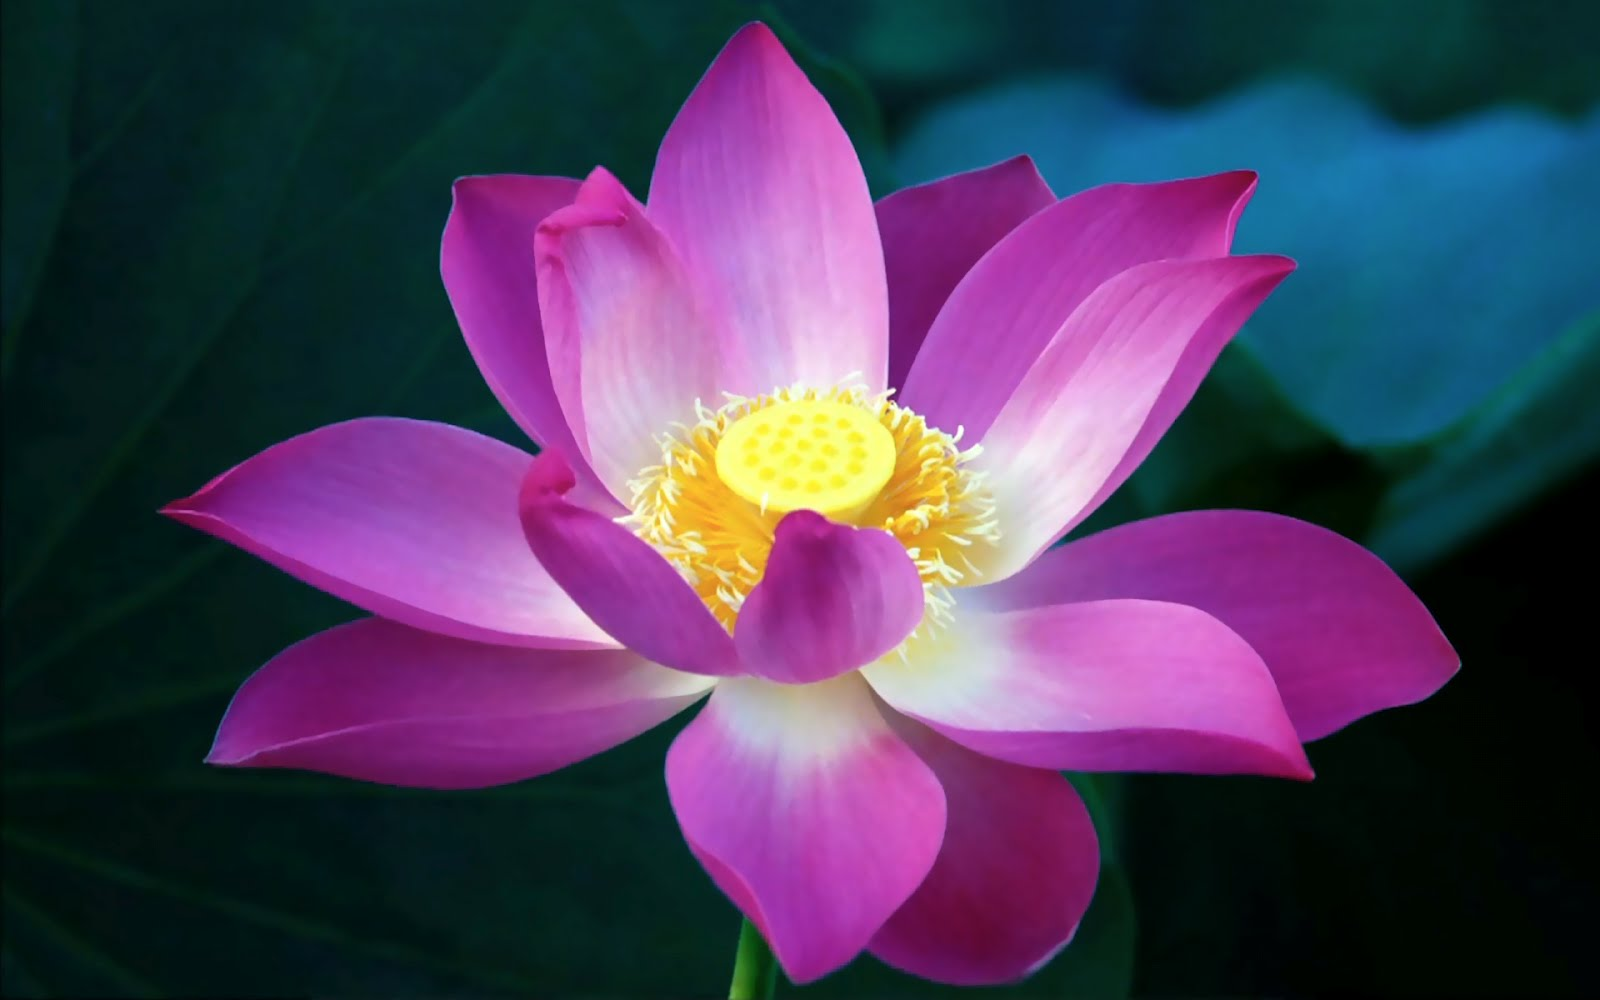 Image amazing water lily flower beautiful 15g criminal case amazing water lily flower beautiful 15g izmirmasajfo